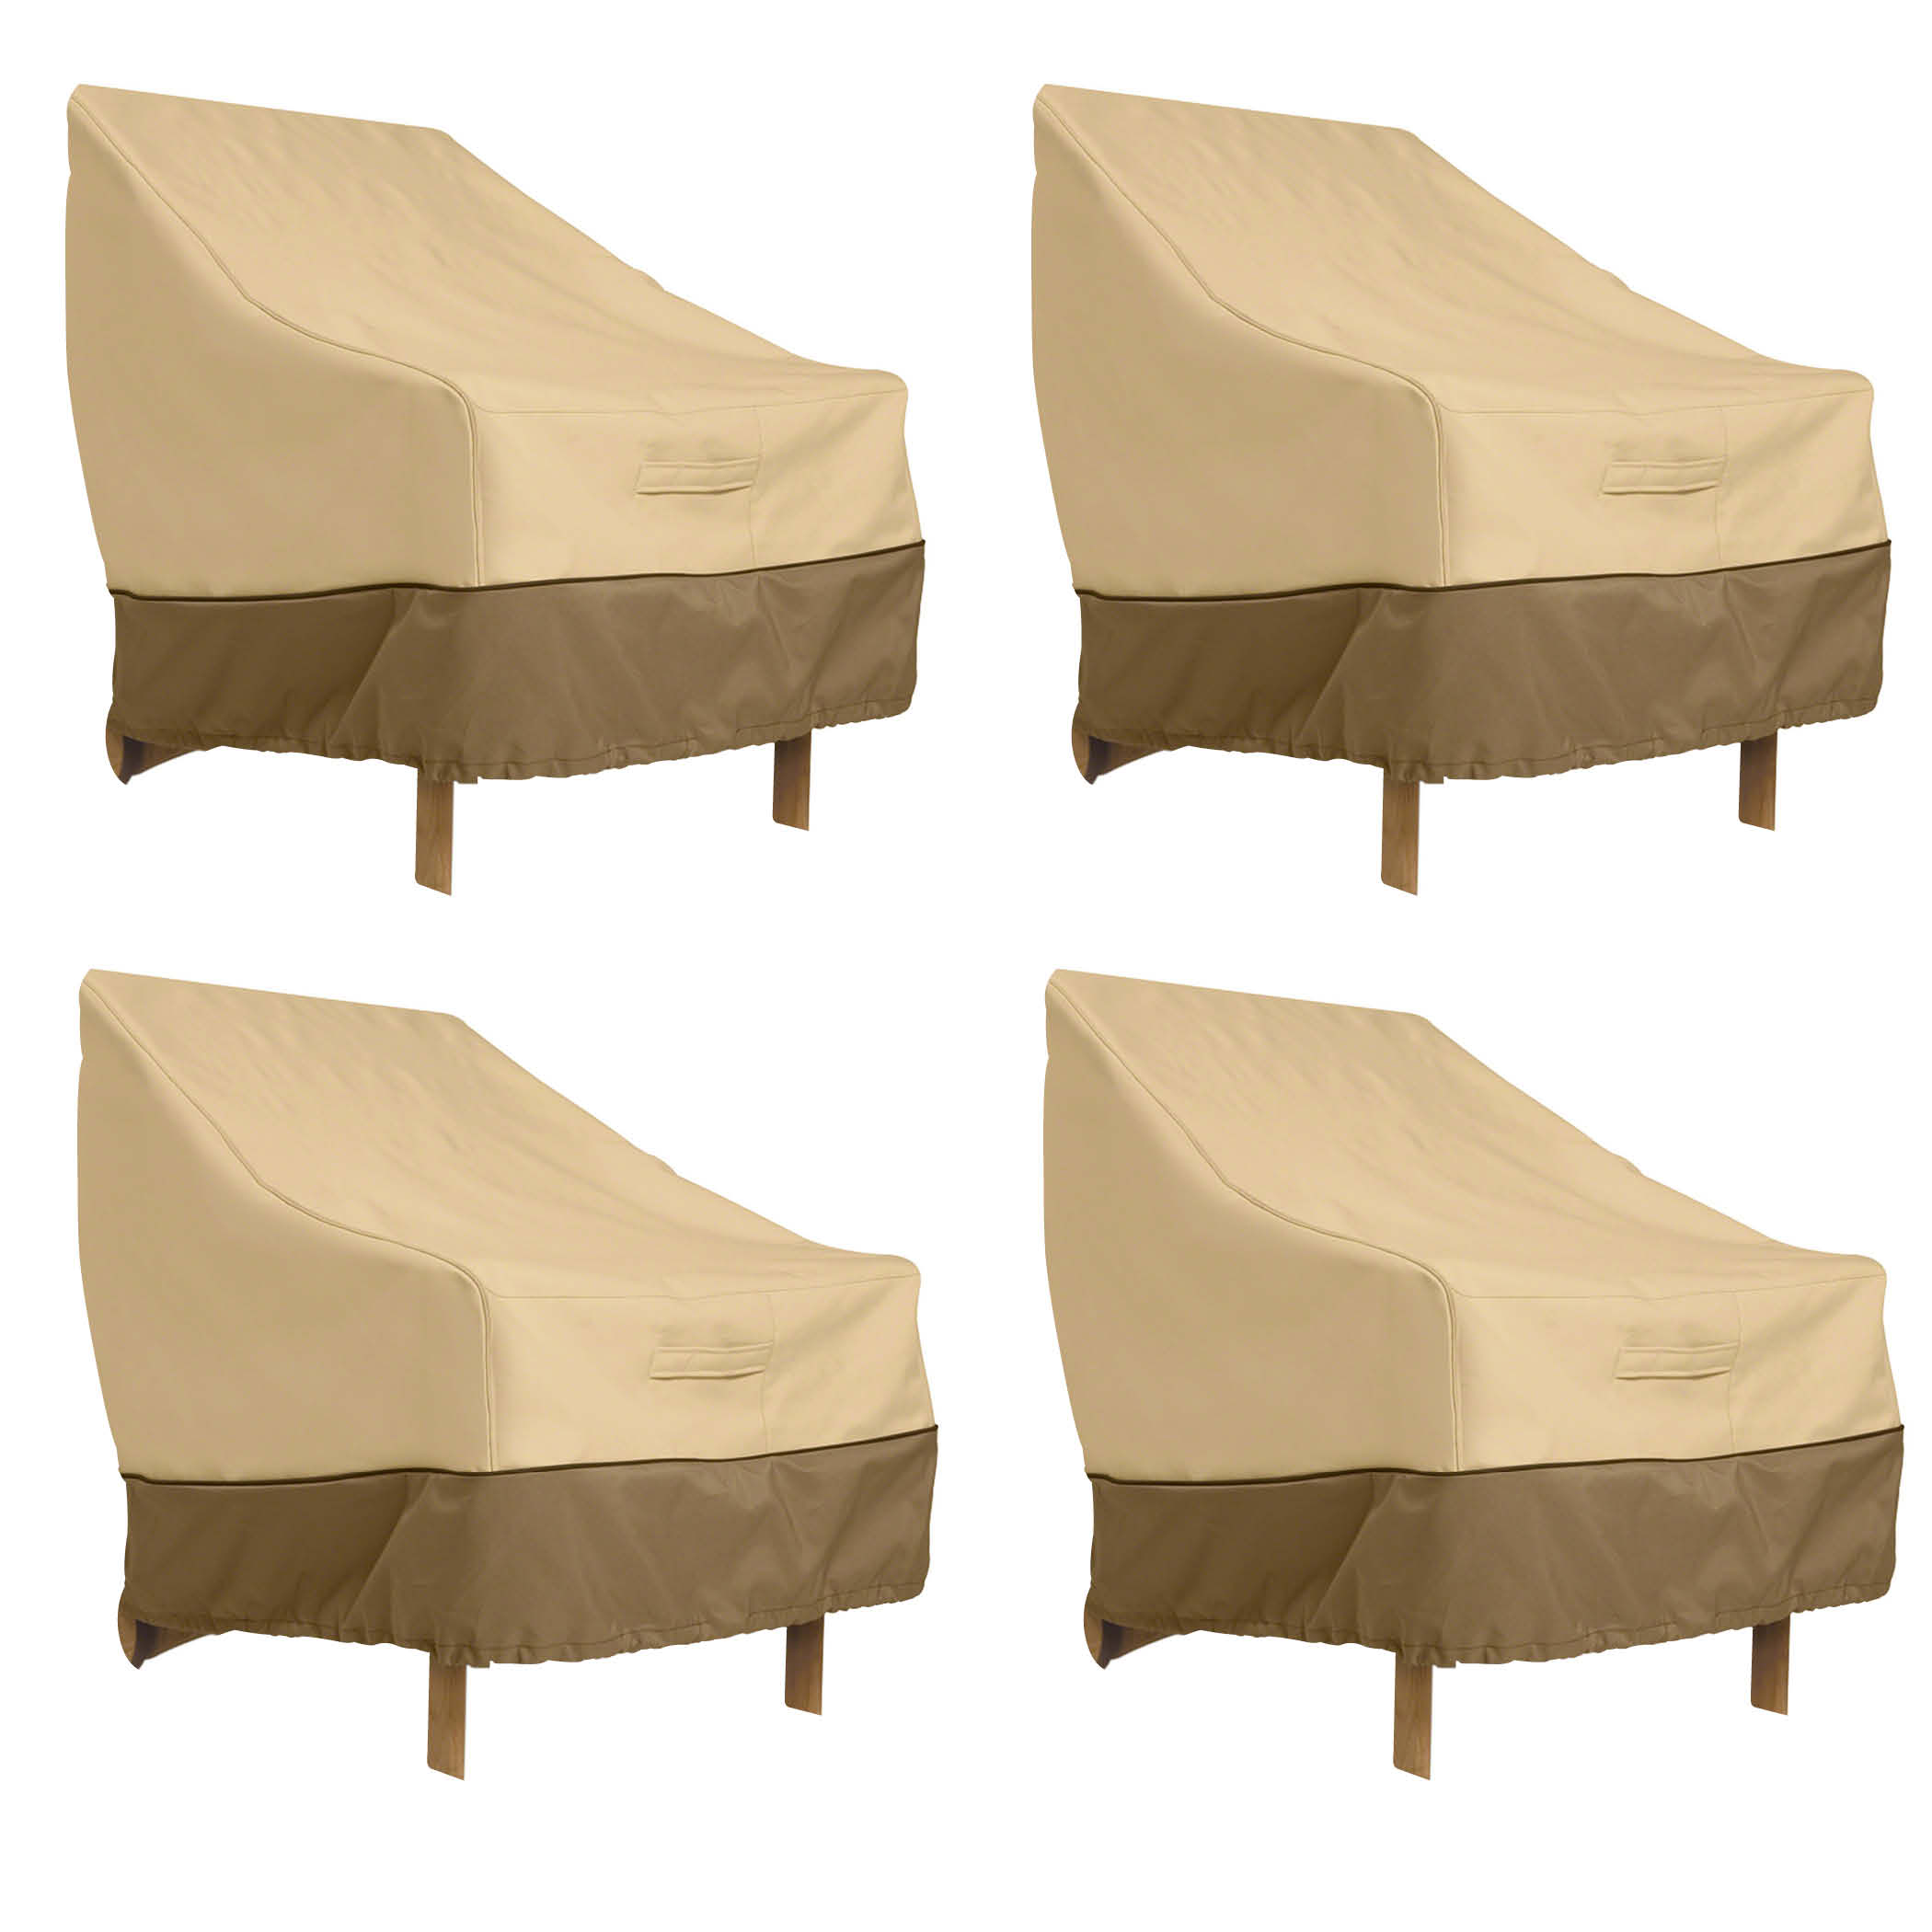 Classic Accessories Veranda High Back Dining Patio Chair Cover - Durable and Water Resistant Patio Cover, 4-Pack